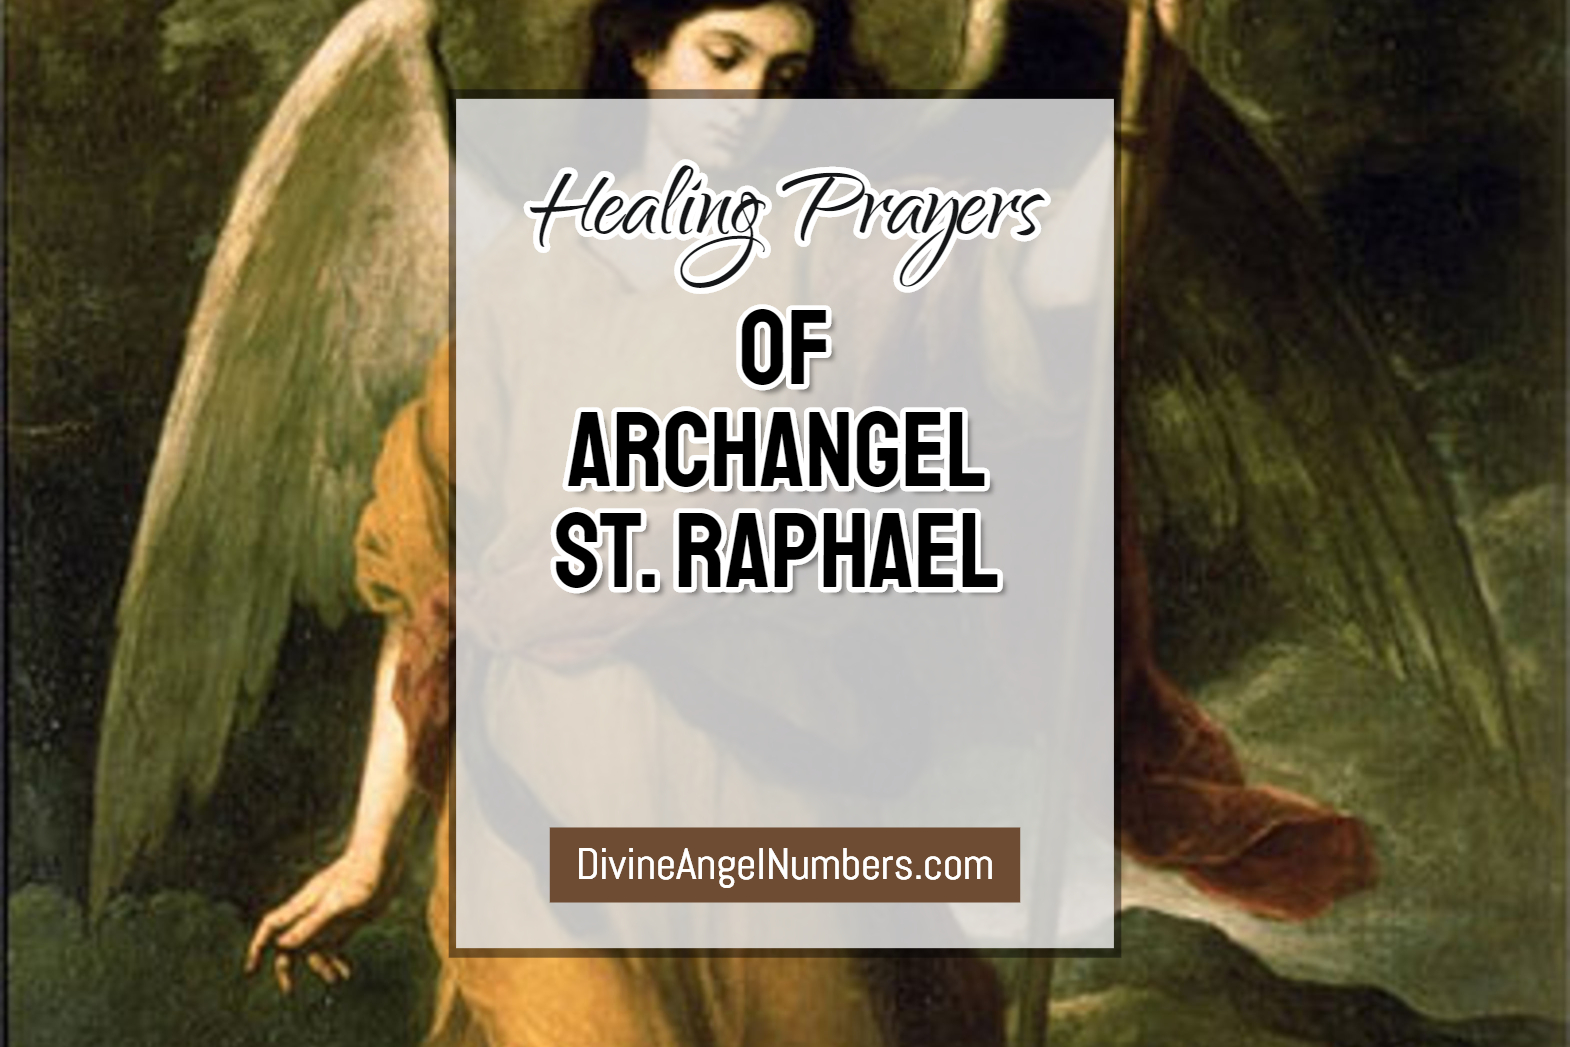 Archangel Raphael prayers for healing